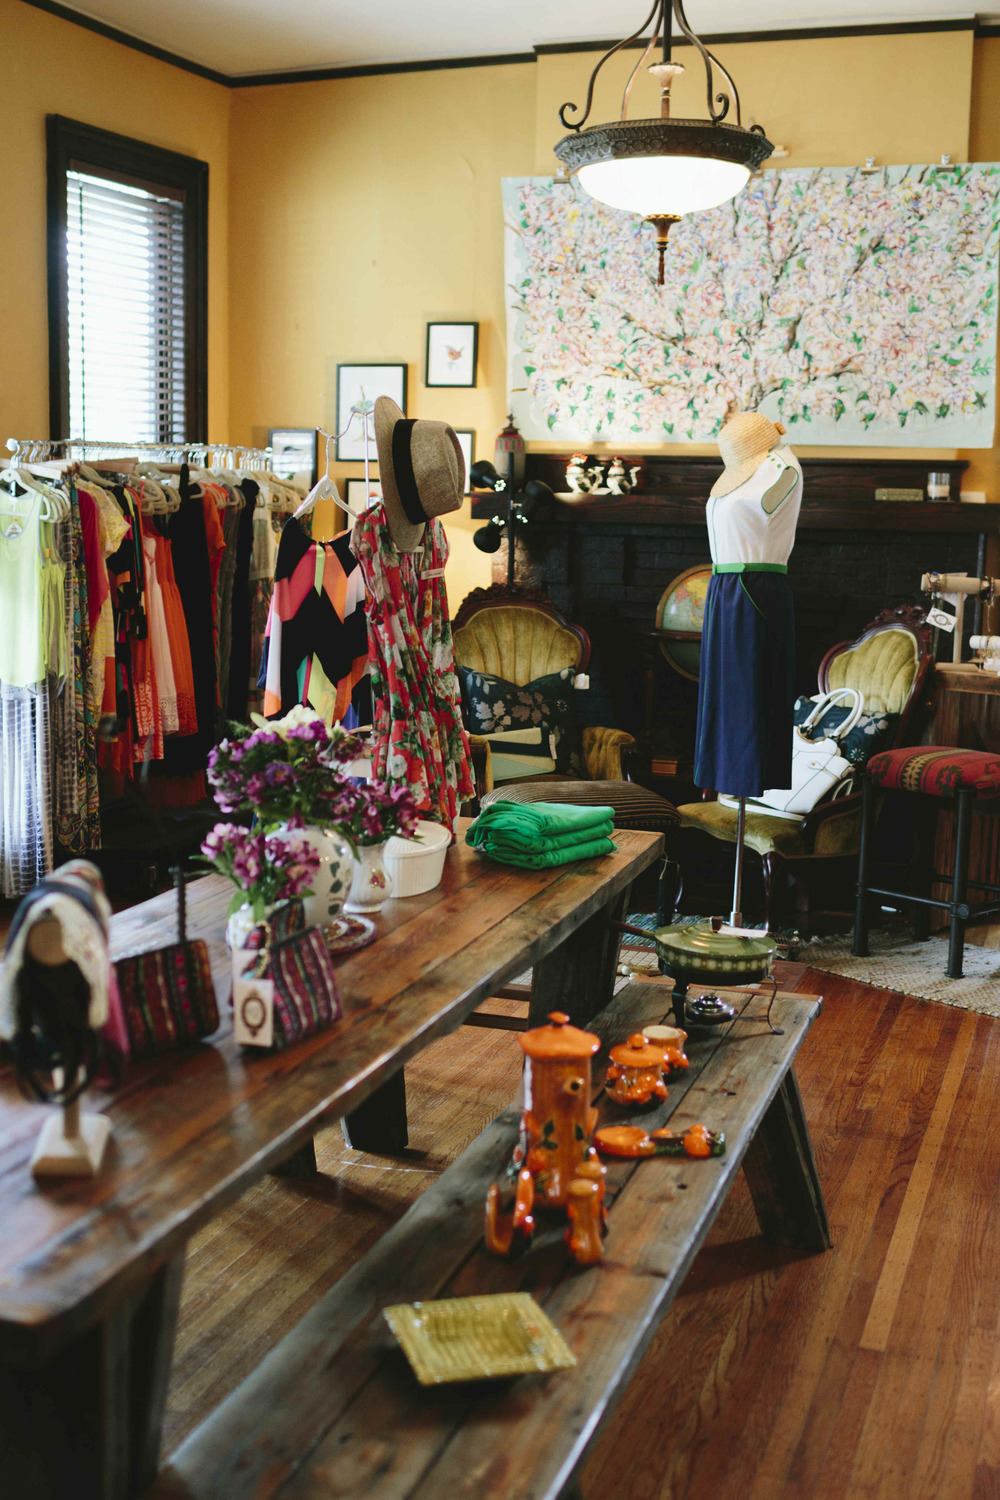 AshevilleFolk Summer City Guide. Charlotte NC with Megan Gielow. Frock Shop. Modern and vintage pieces displayed in a charming bungalow.